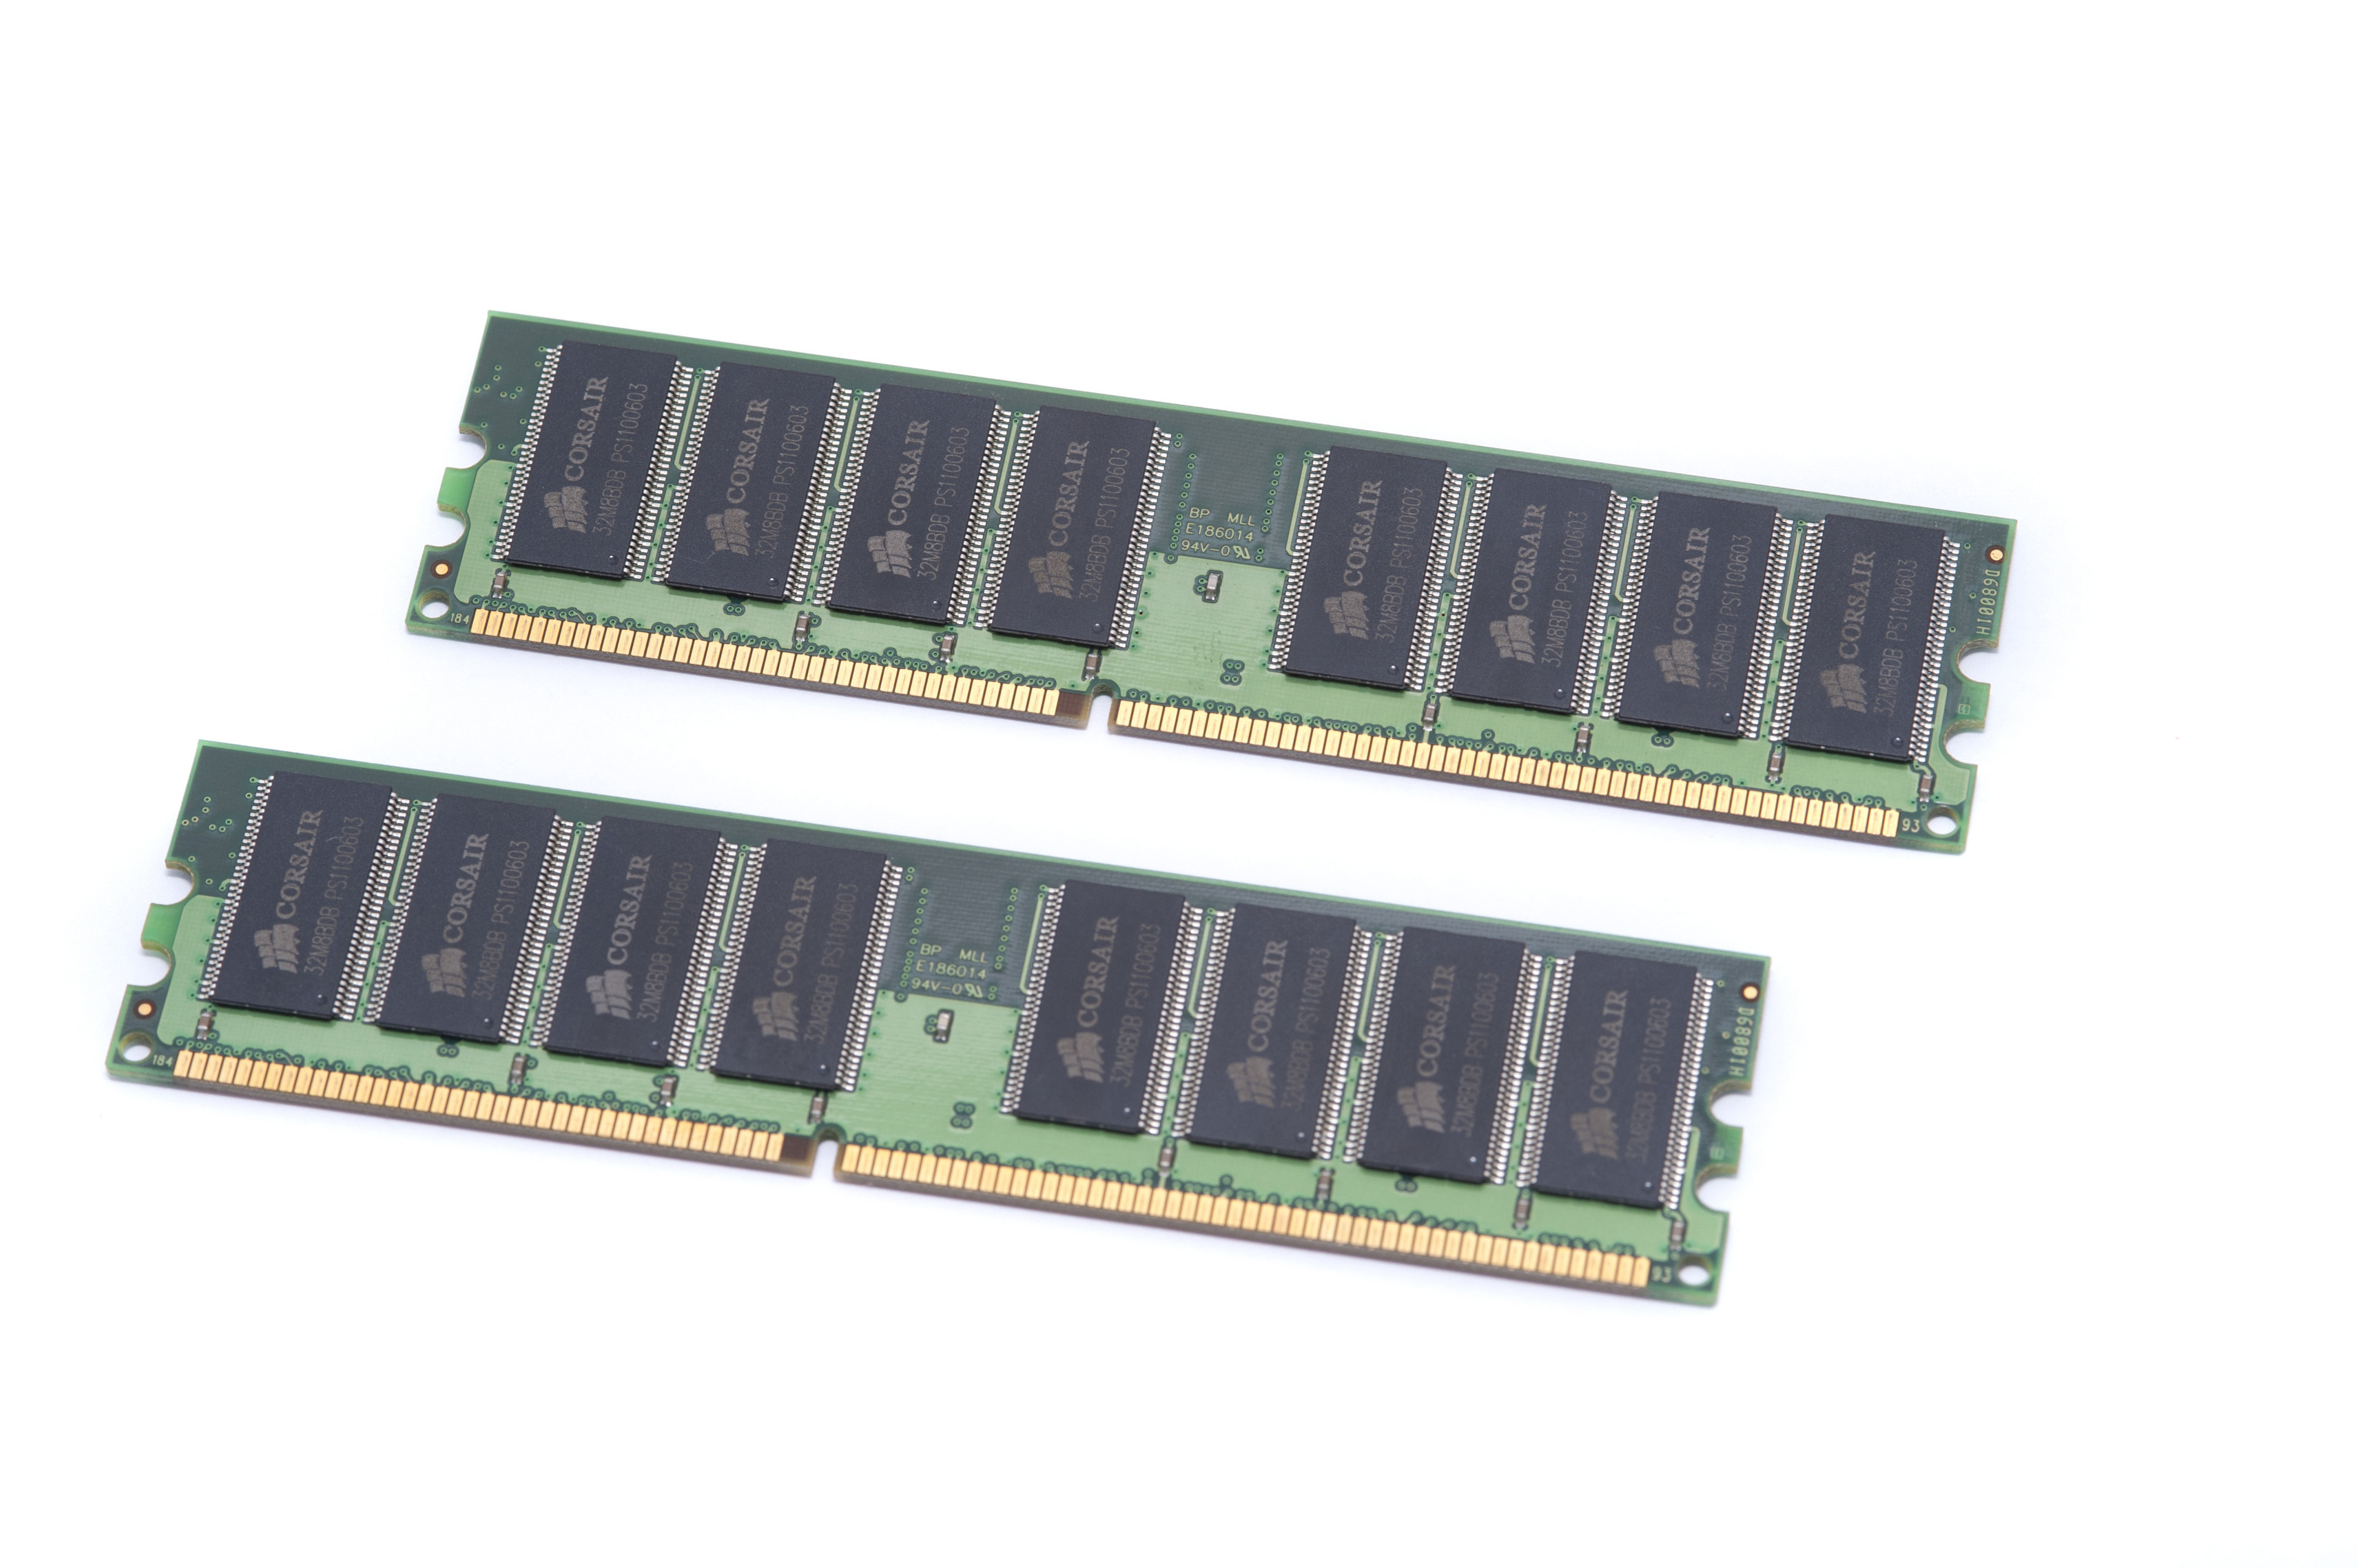 Two RAM Memory Modules with Memory Cells on White Background, Computer Data Storage Technolody on White Background